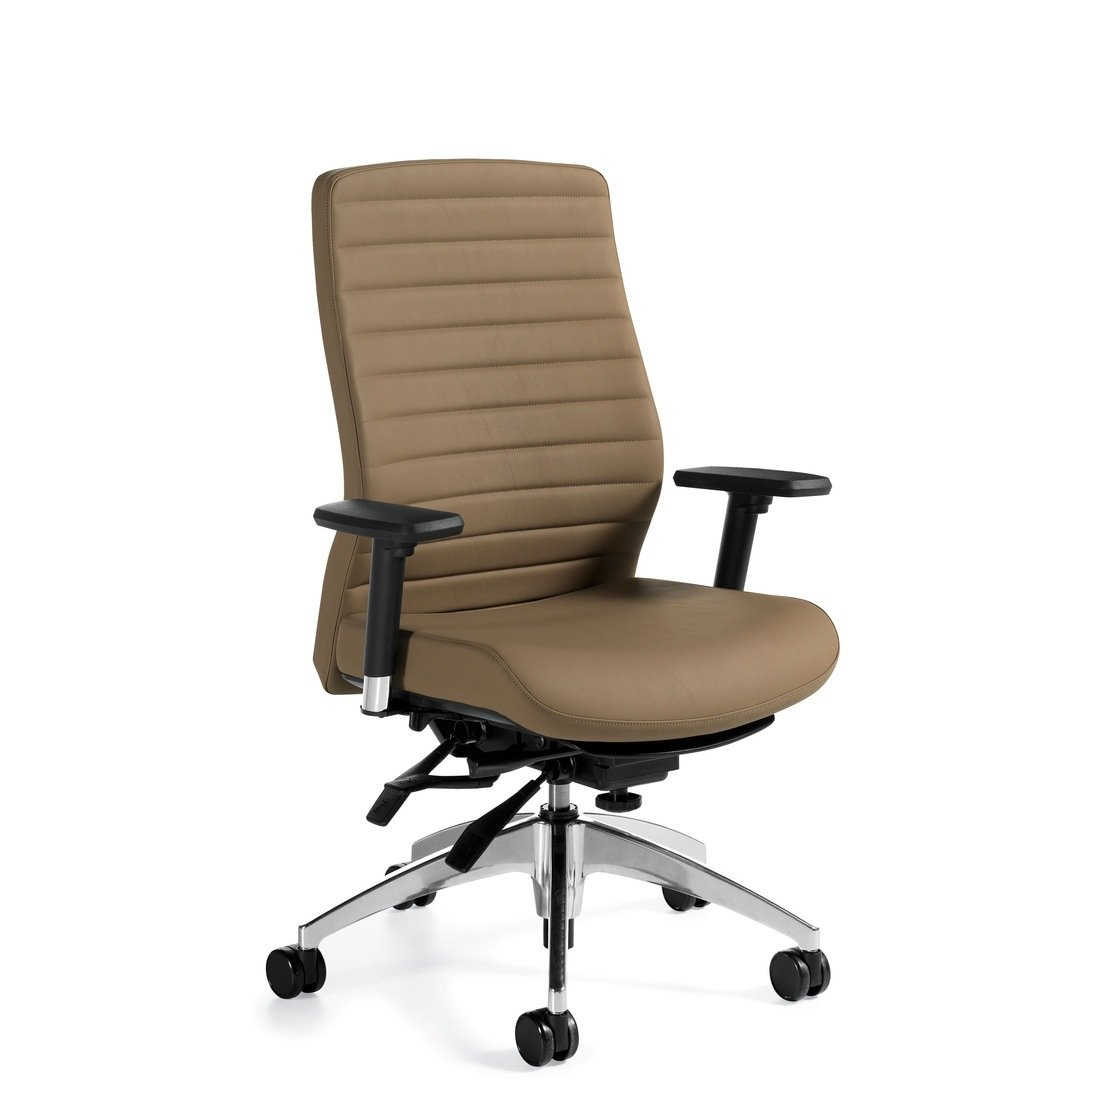 Aspen high-back multi-tilter chair, model 2851LM-3. This chair has been placed on a white background.